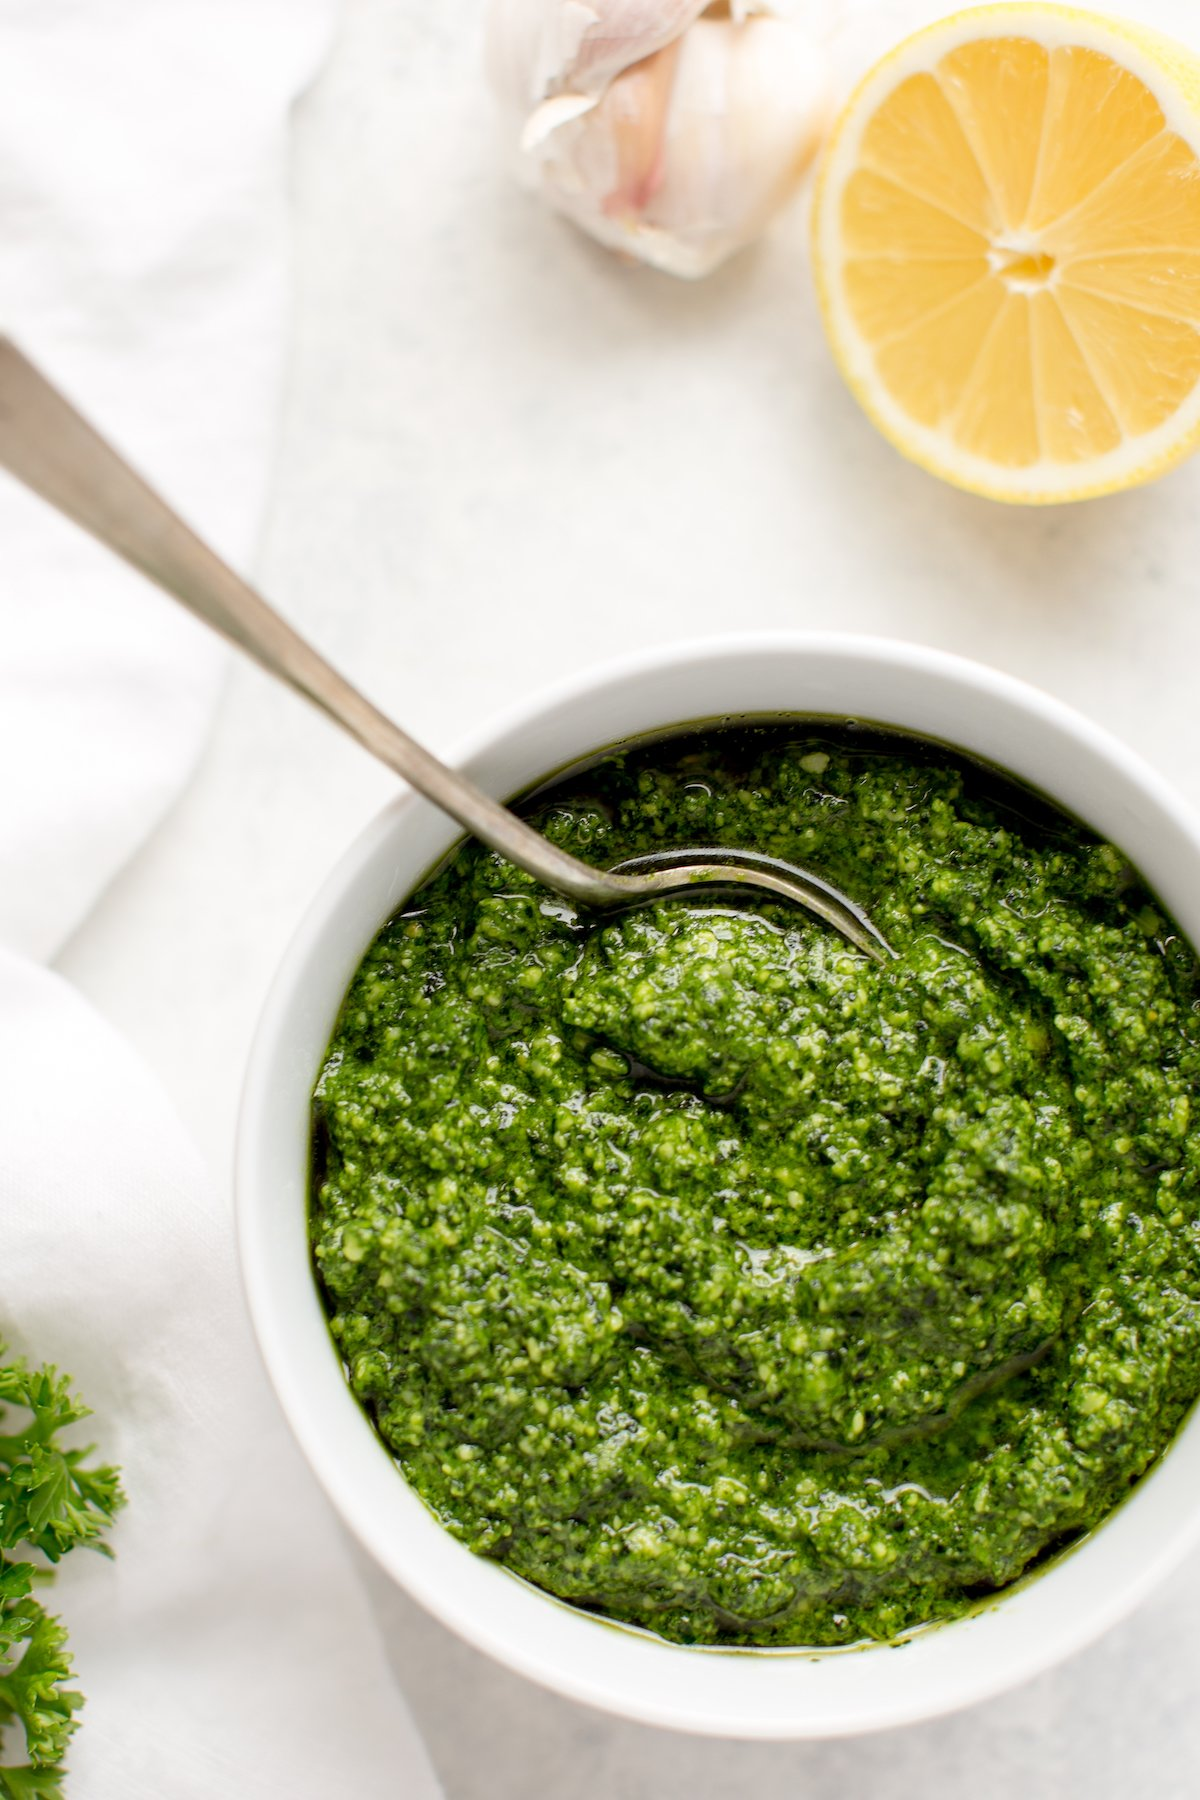 kale pesto in a bowl with spoon and lemon on a white background